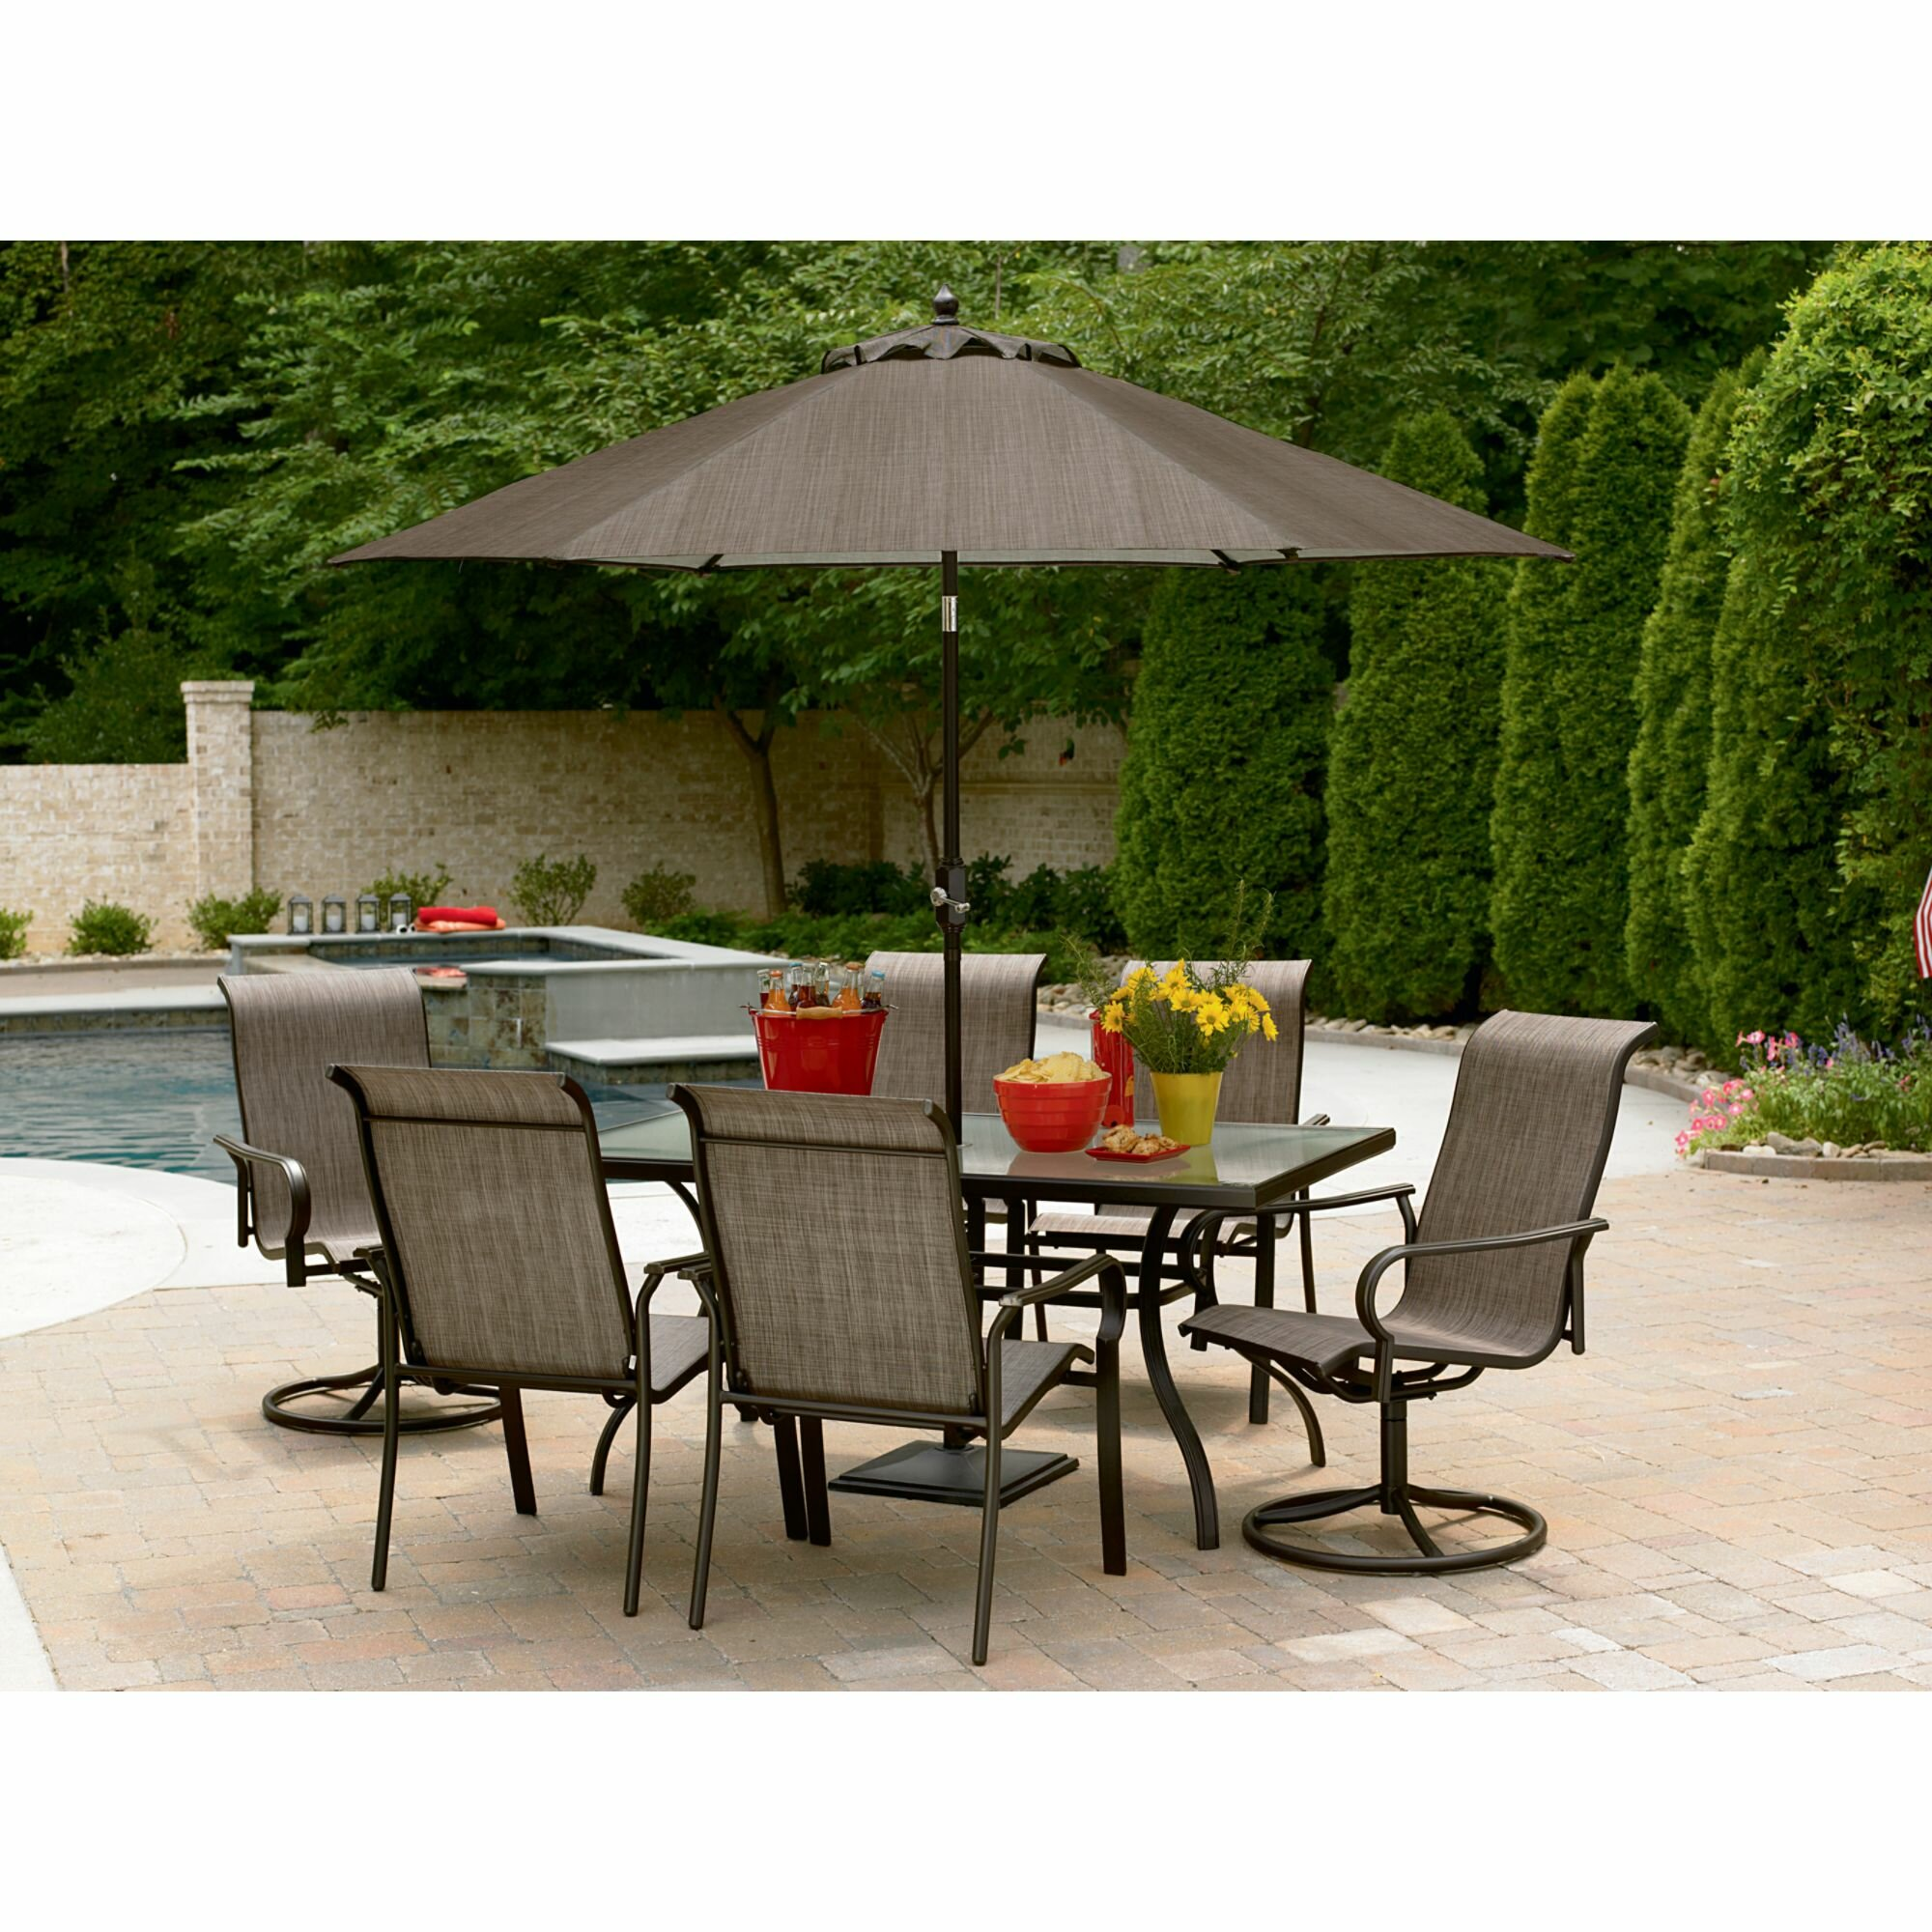 Garden Furniture Outlet patio: sears outlet patio furniture | sears outlet patio furniture